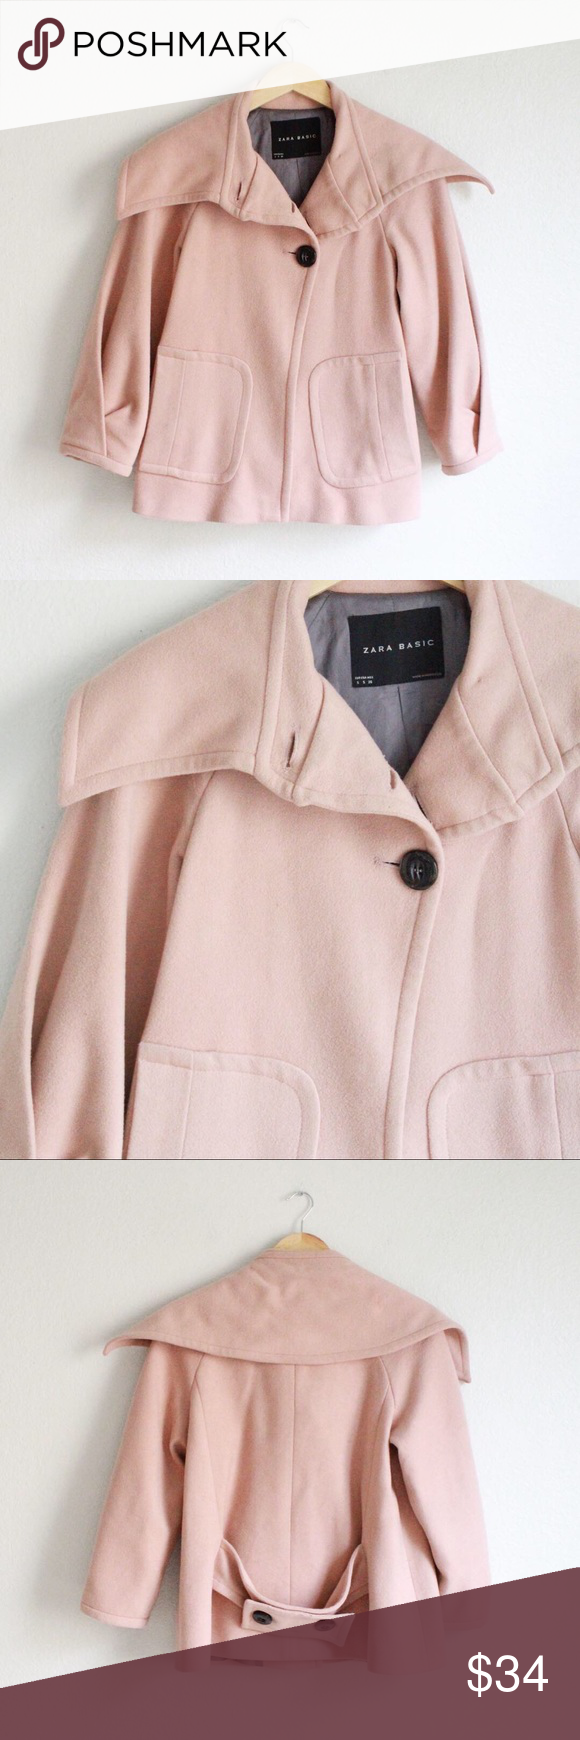 56c4f1954 Zara Basics light pink wool jacket! Awesome Zara Basics light pink ...